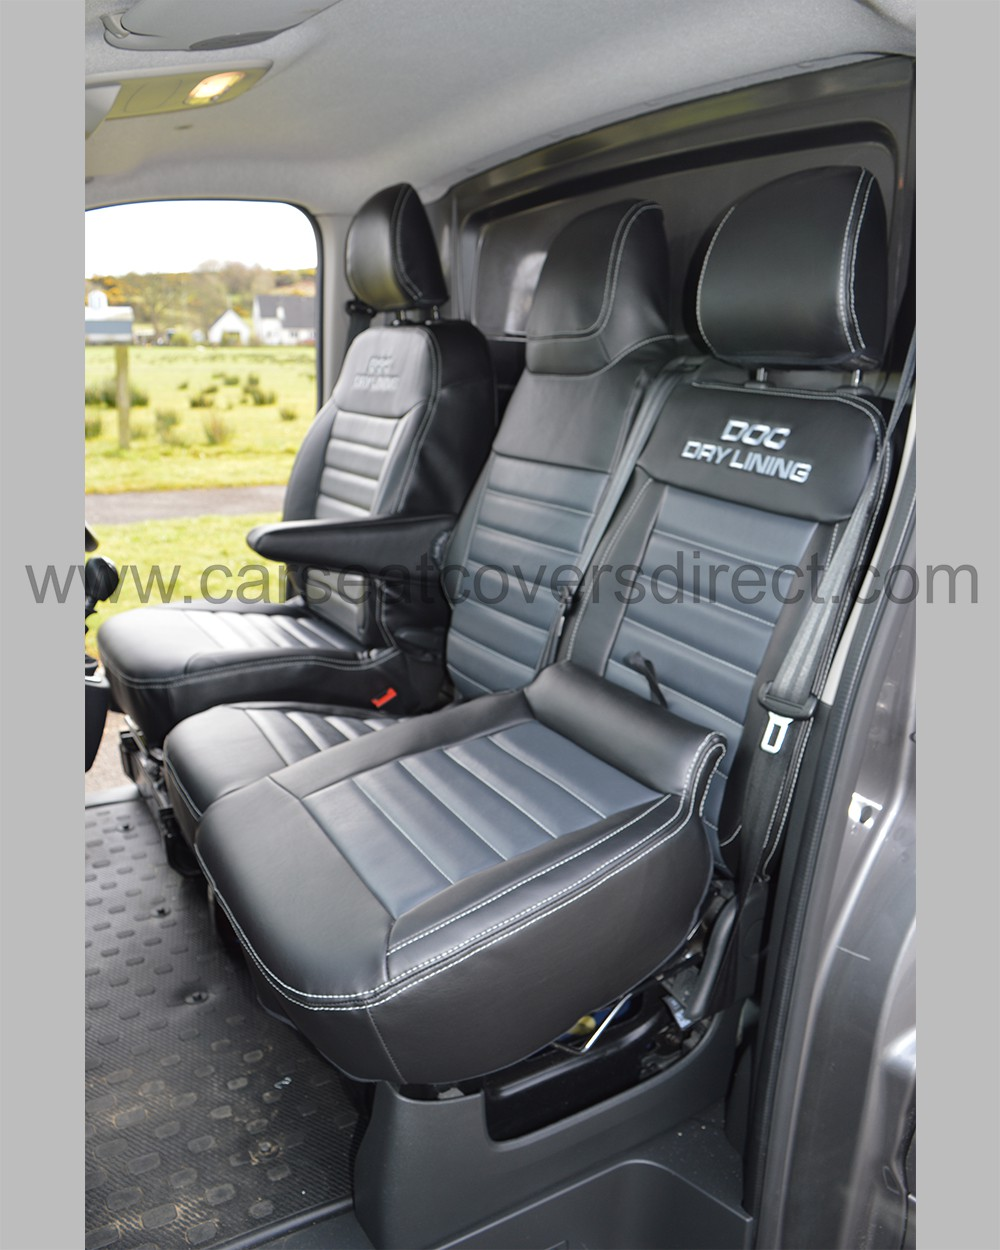 Vauxhall Vivaro Seat Covers Black With Grey Car Seat